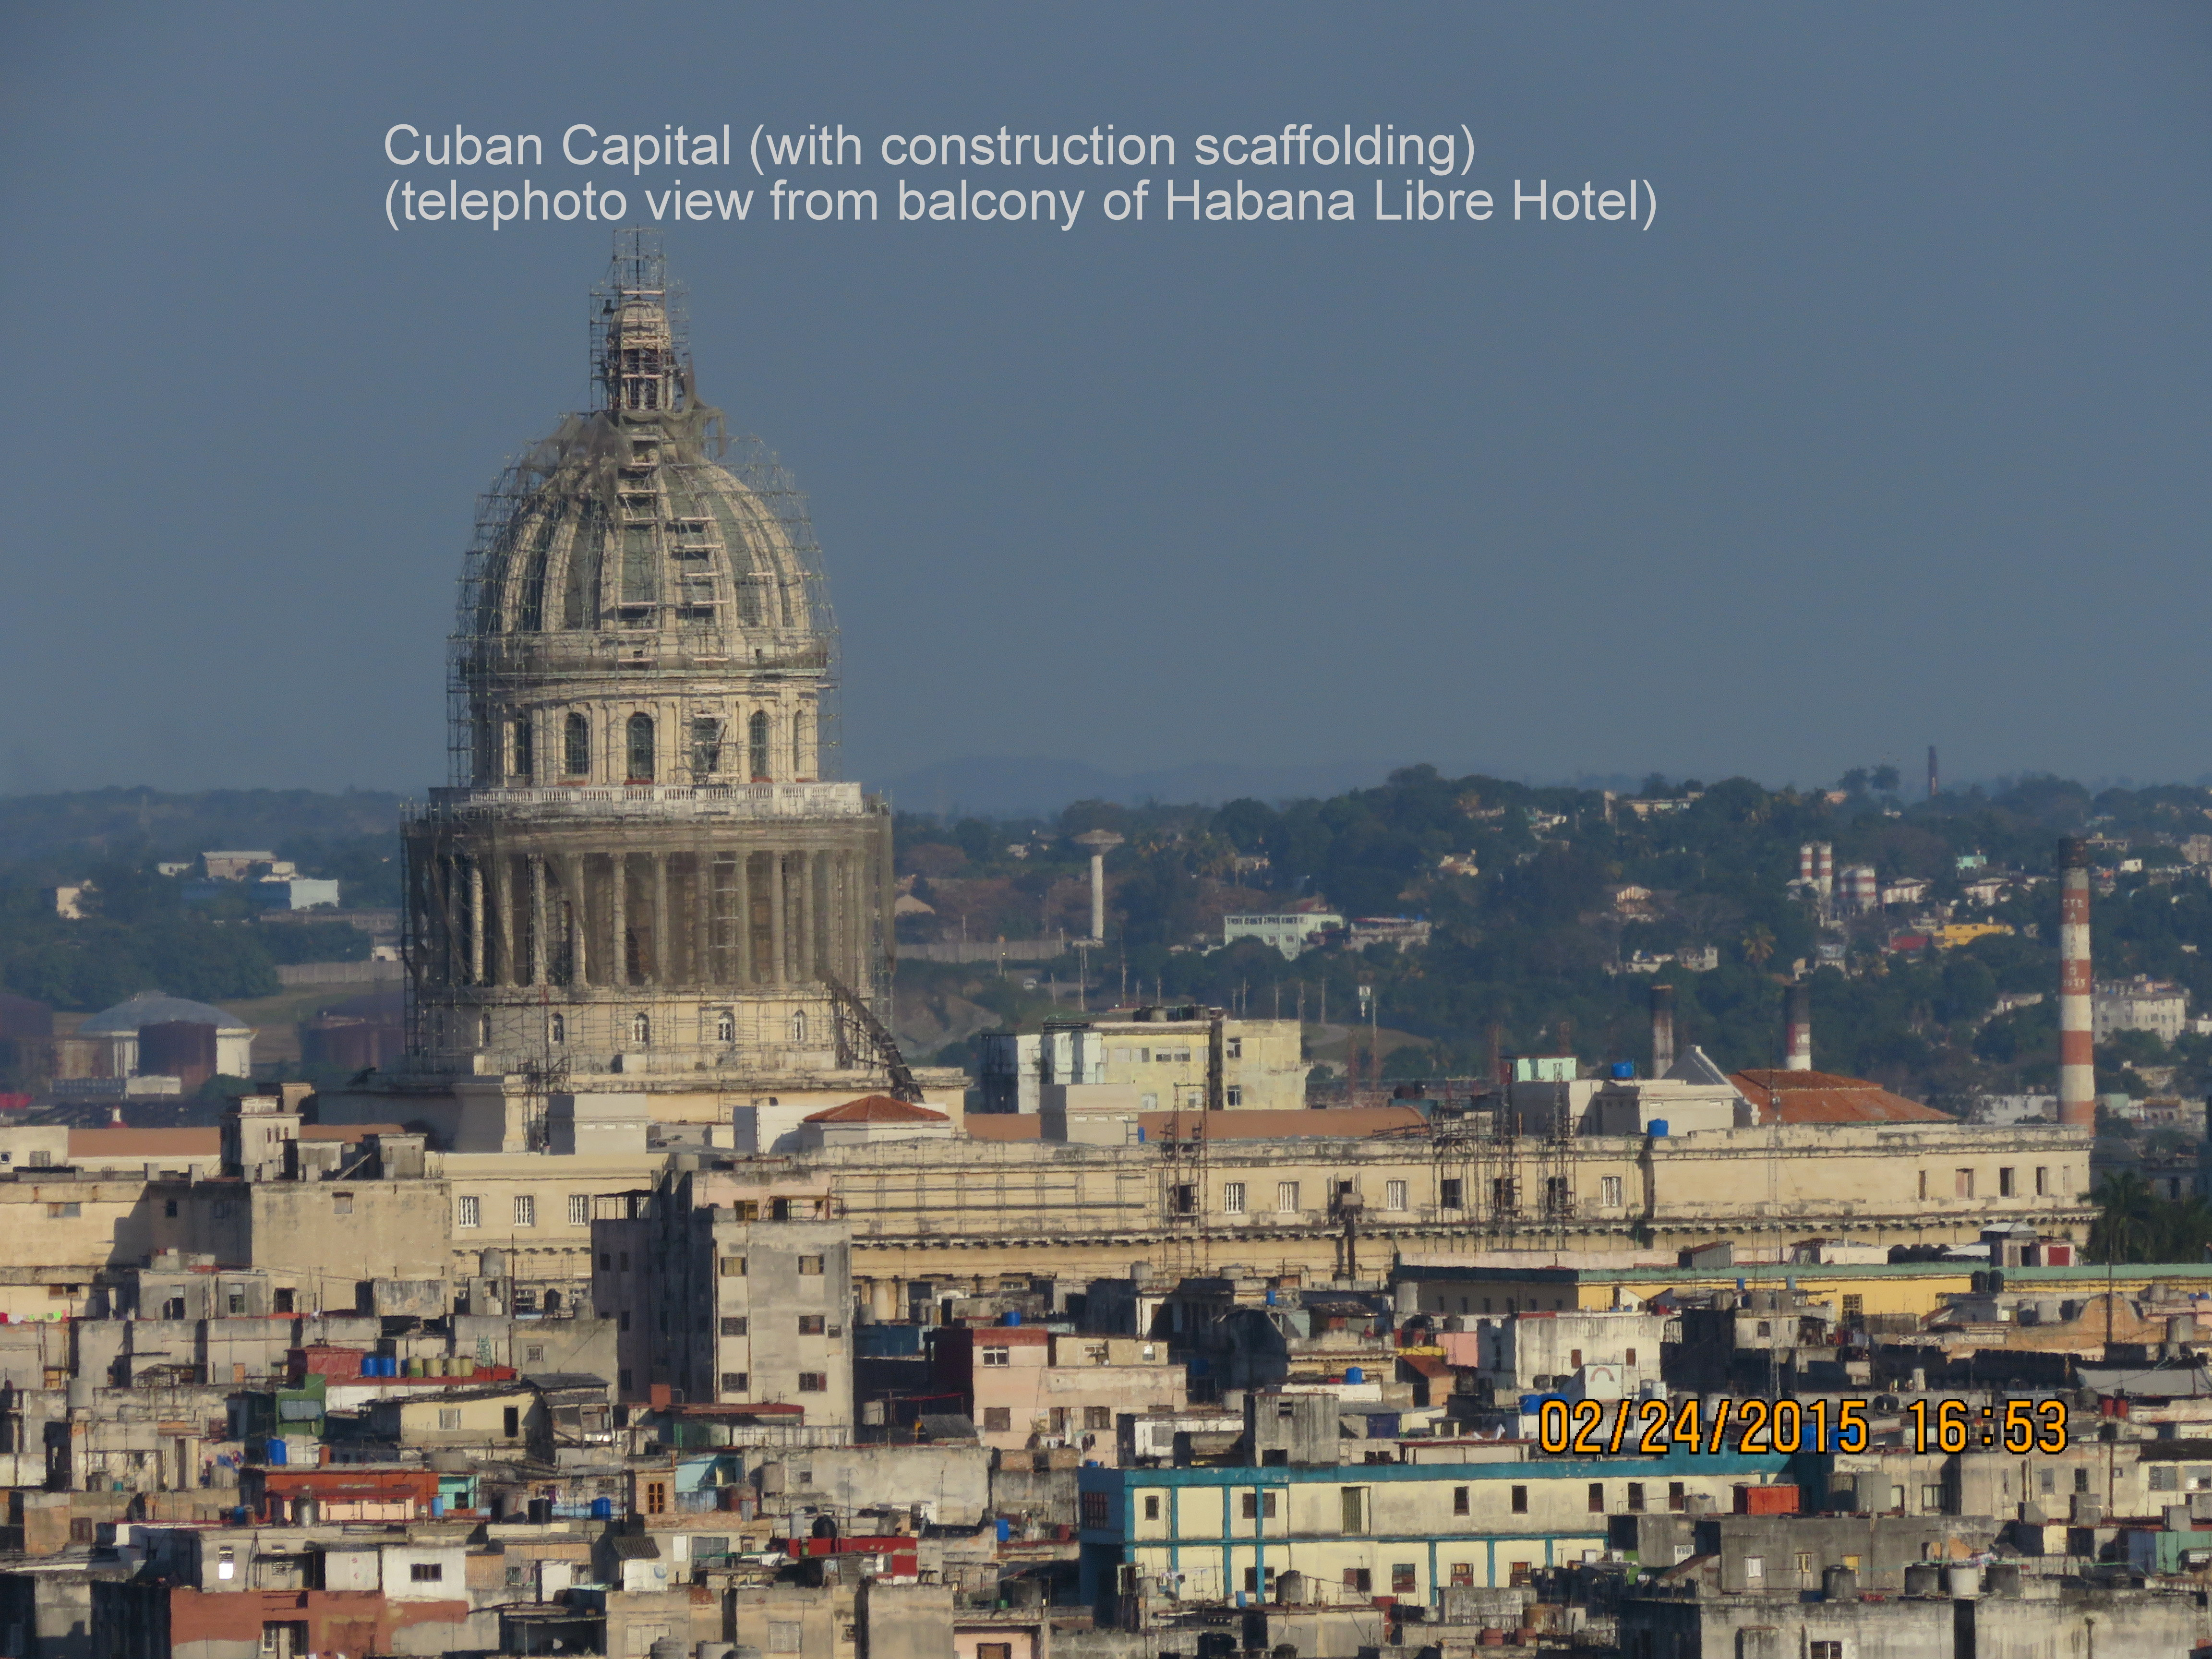 A view of Havana's national capitol building during the Cubaball tour in February 2015.